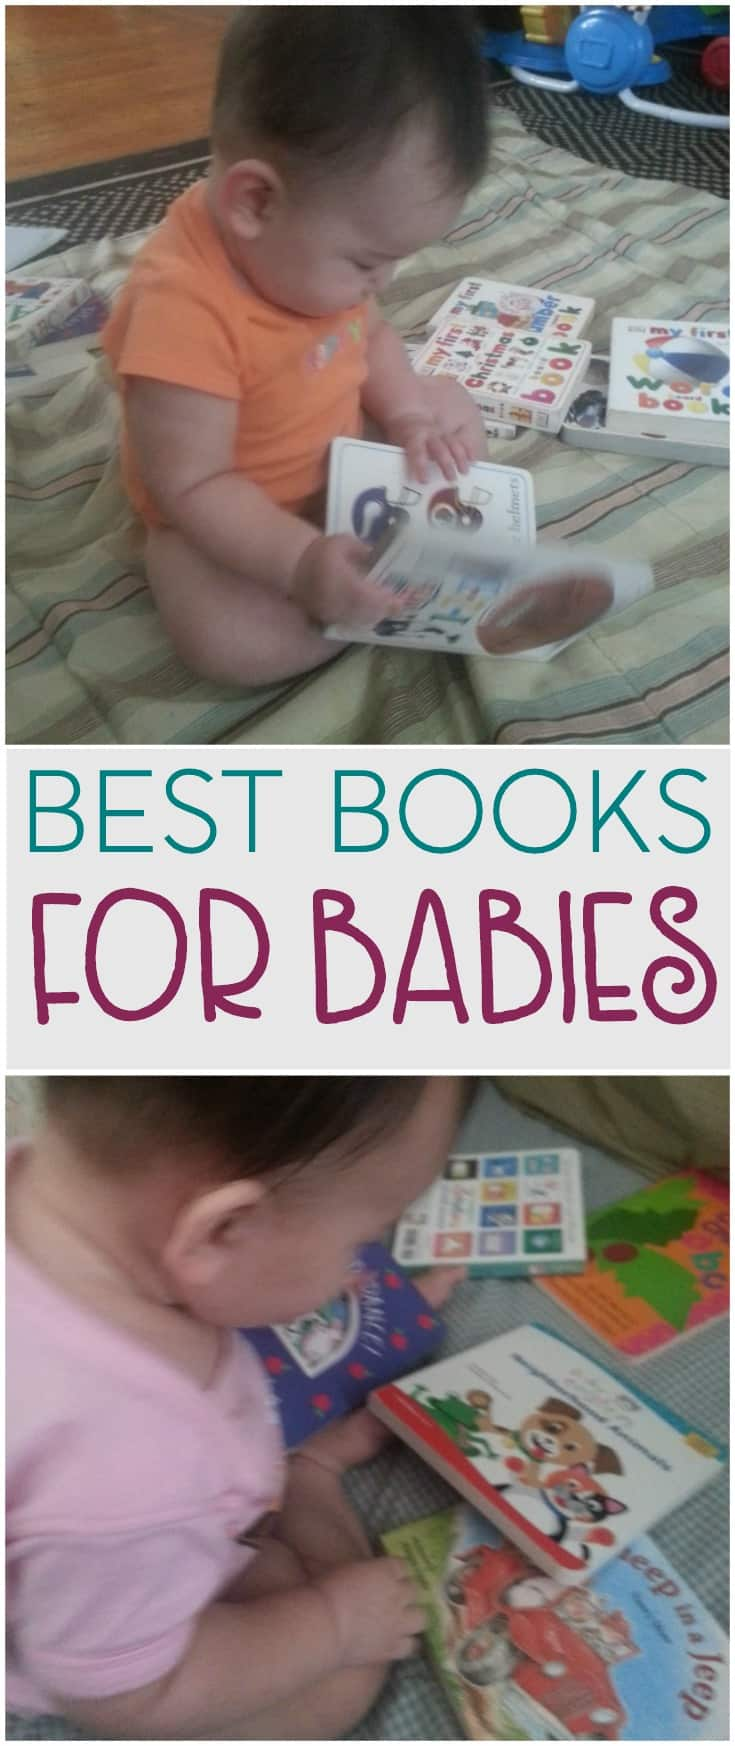 Reading with your children creates a bond that lasts a lifetime. Here are a few picks for books for babies that can also be read to and with your toddler.